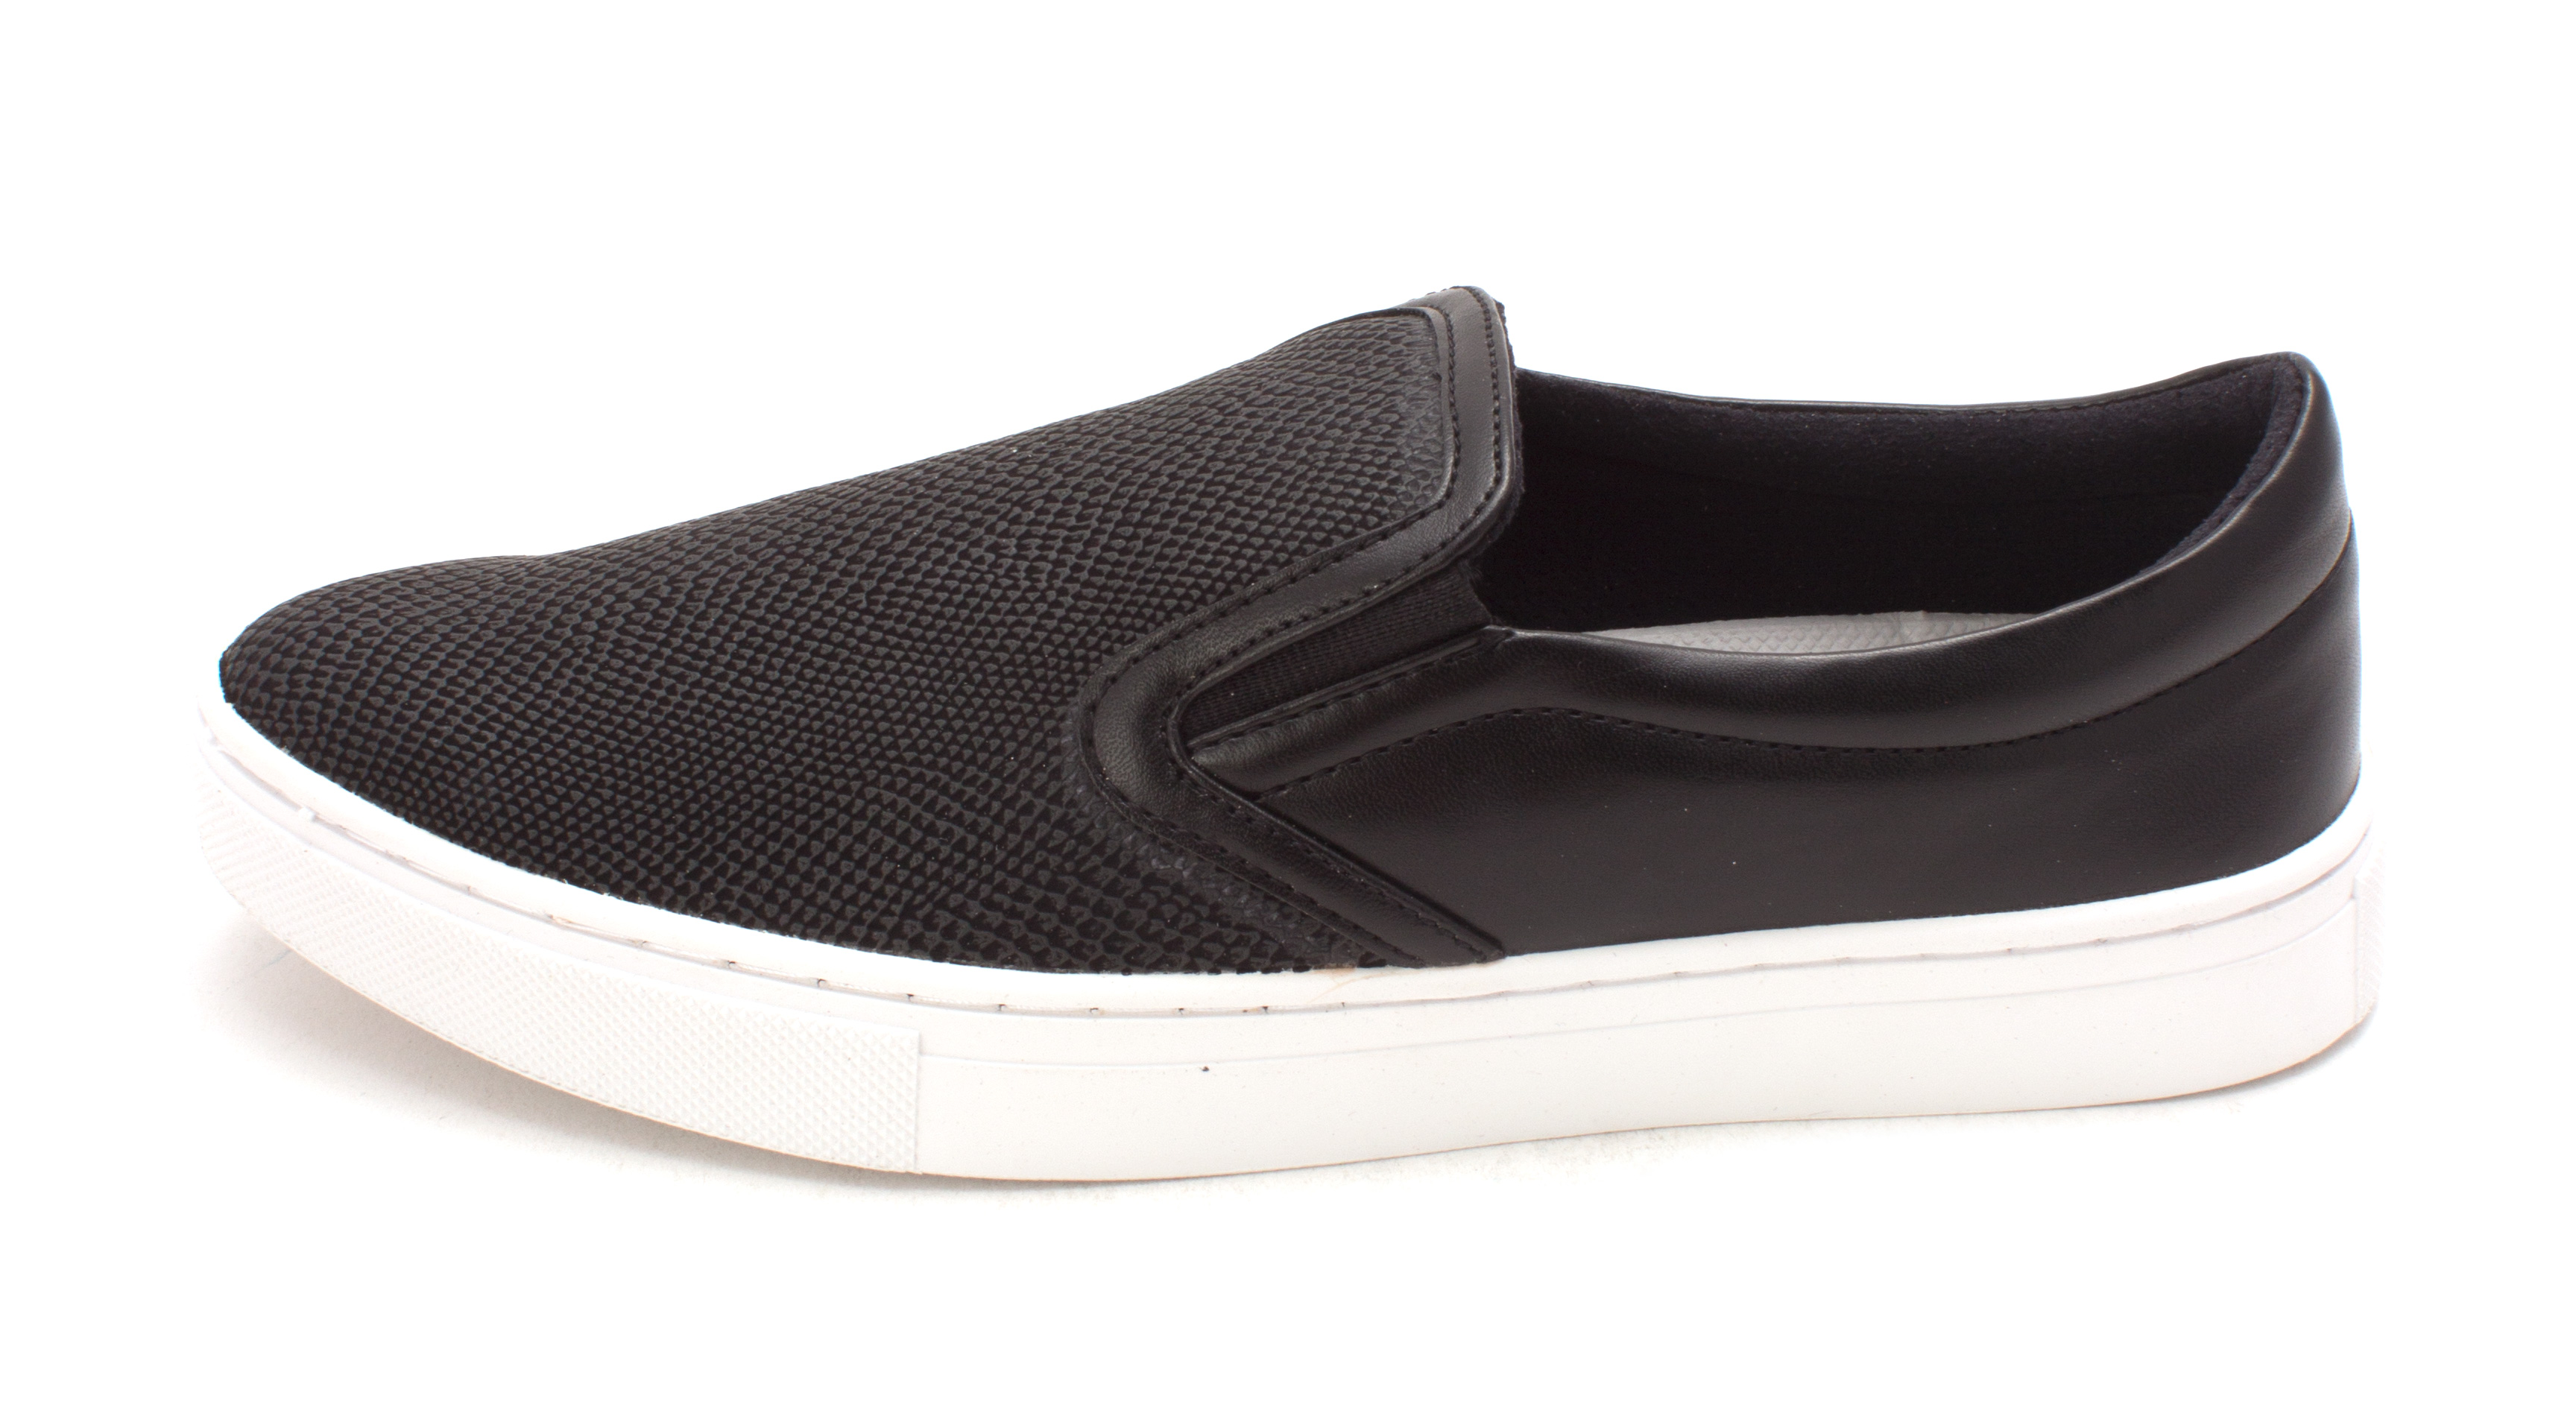 GUESS Womens Farilyn2 Low Top Slip On Fashion Sneakers Black Size 8.5